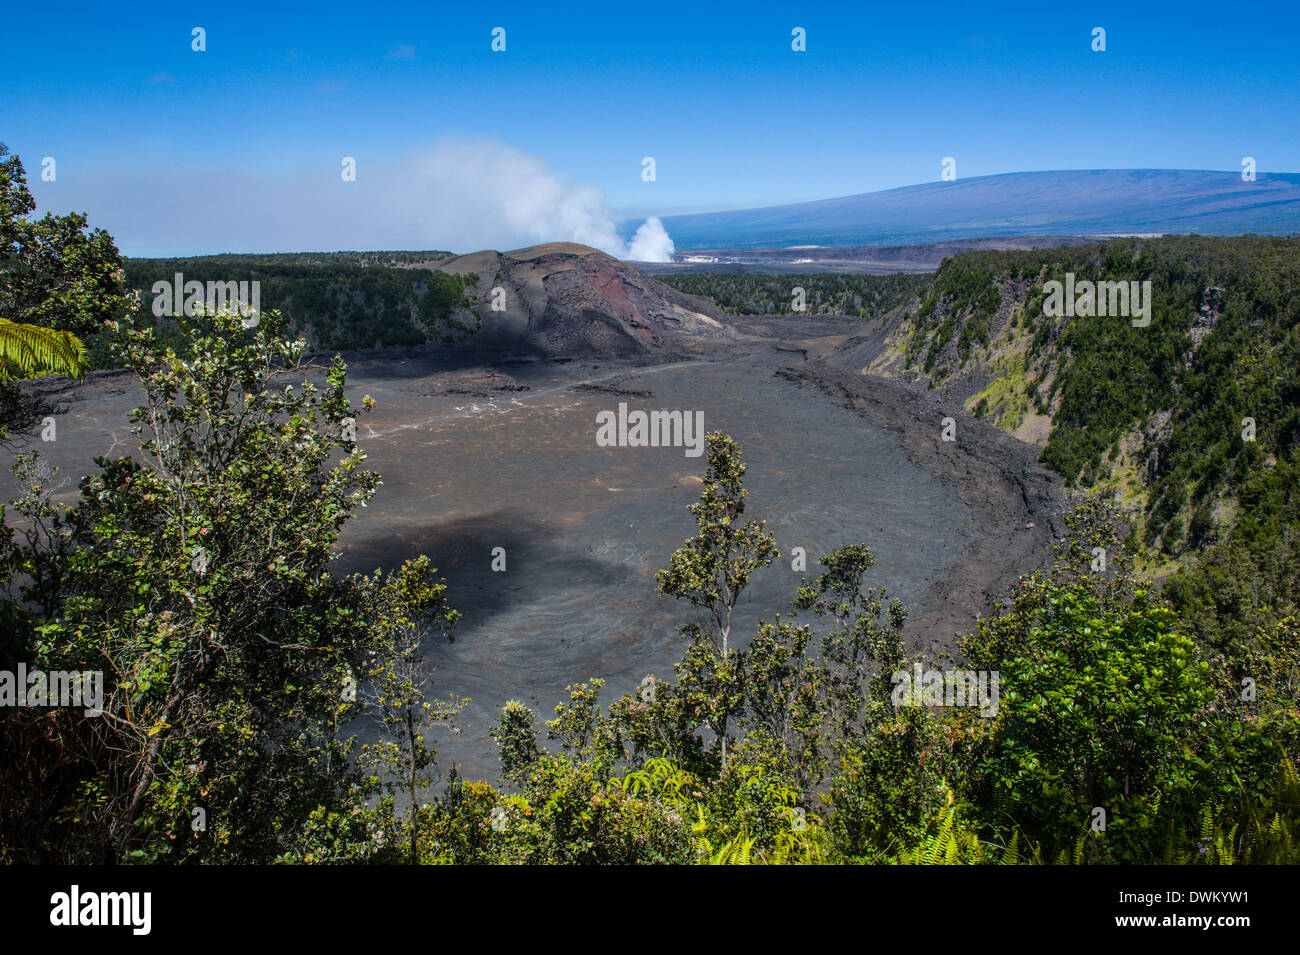 Volcanic crater before Kilauea Summit Lava Lake in the Hawaii Volcanoes National Park, UNESCO Site, Big Island, Hawaii, Pacific - Stock Image